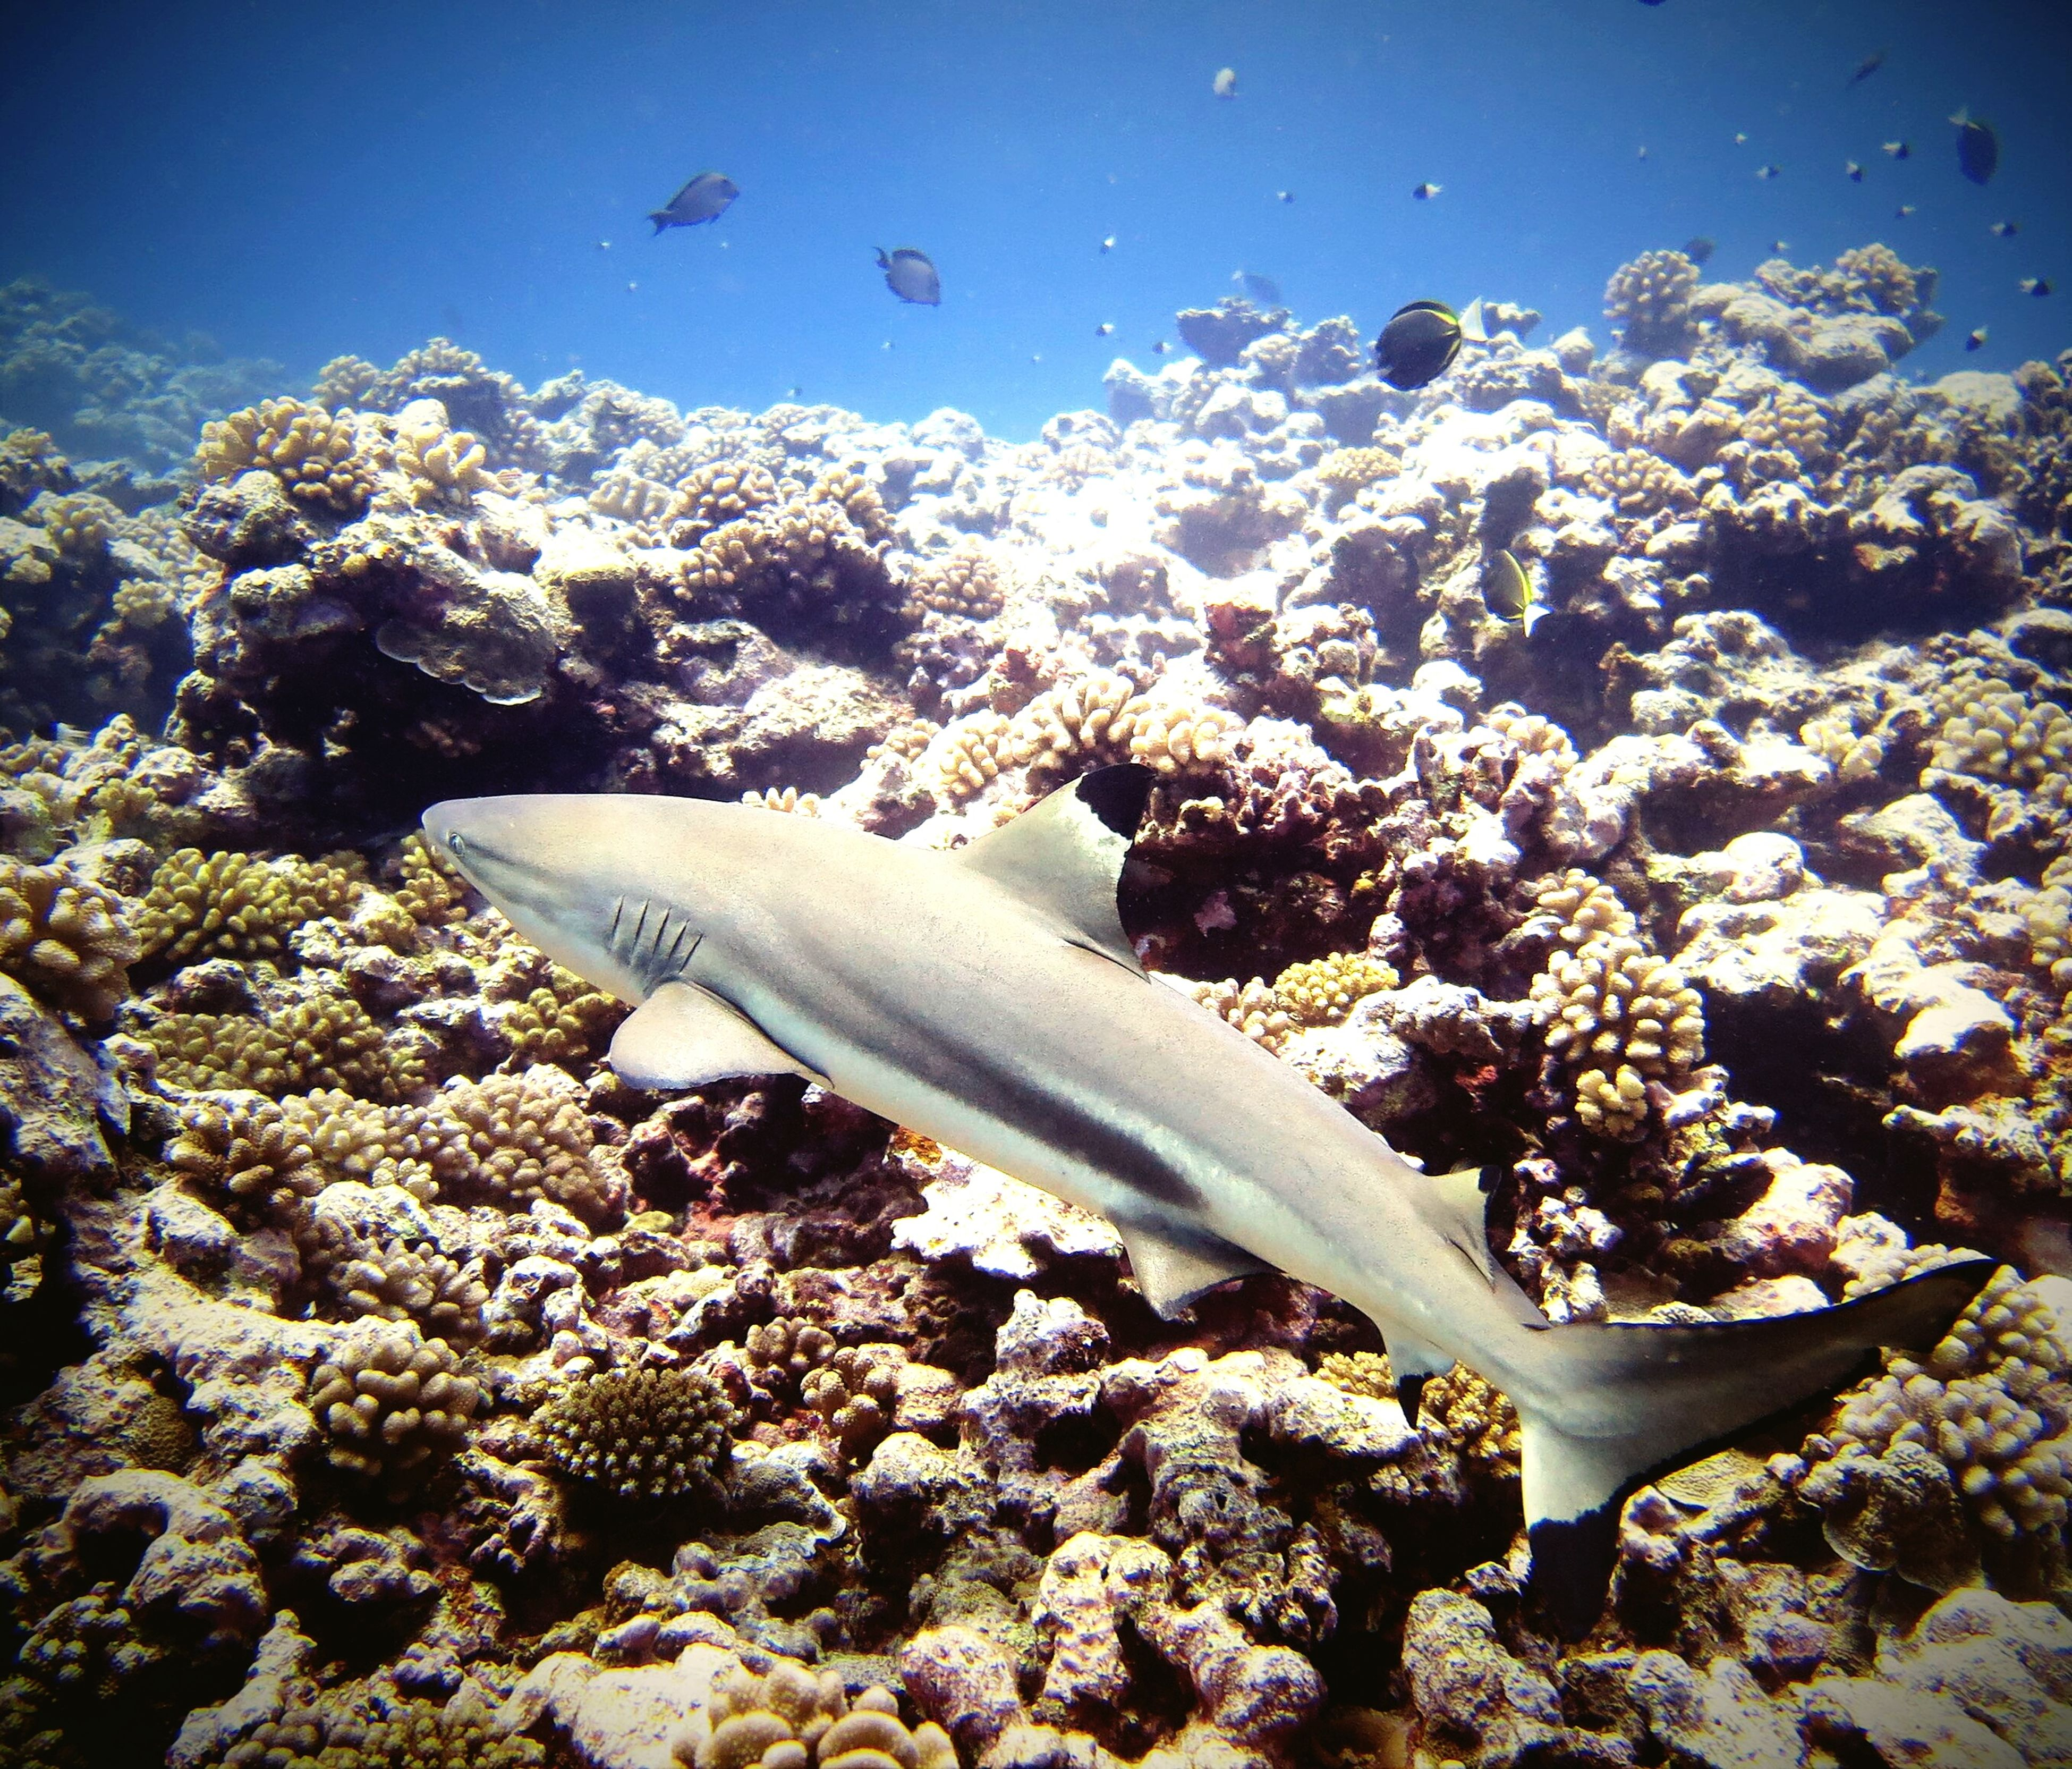 Polynesia Black-tip Shark Underwater UnderSea Animal Themes Animals In The Wild Divingphotography